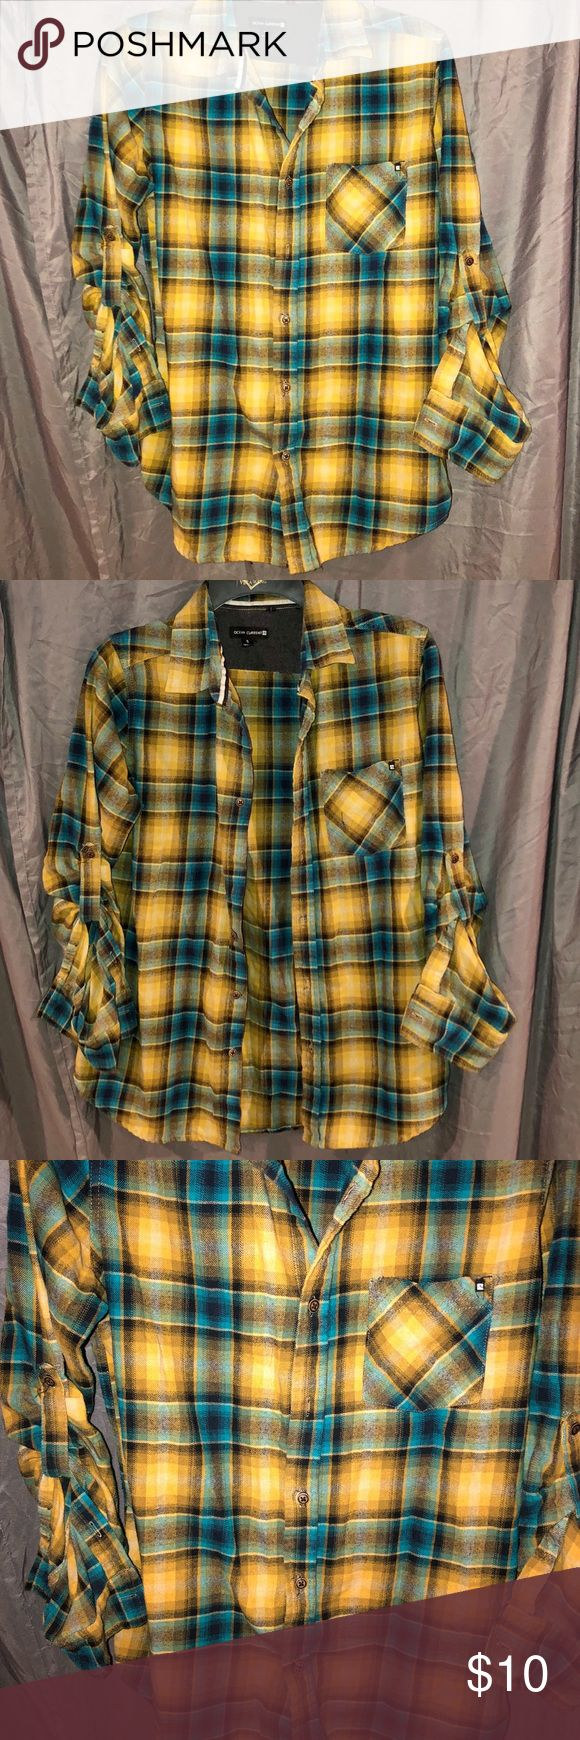 Ocean Current Men's Plaid Button Down Shirt *Great condition! *No tears/rips/stains, only flaw is that the shirt is missing one button (shown in third pic) Ocean Current Shirts Casual Button Down Shirts